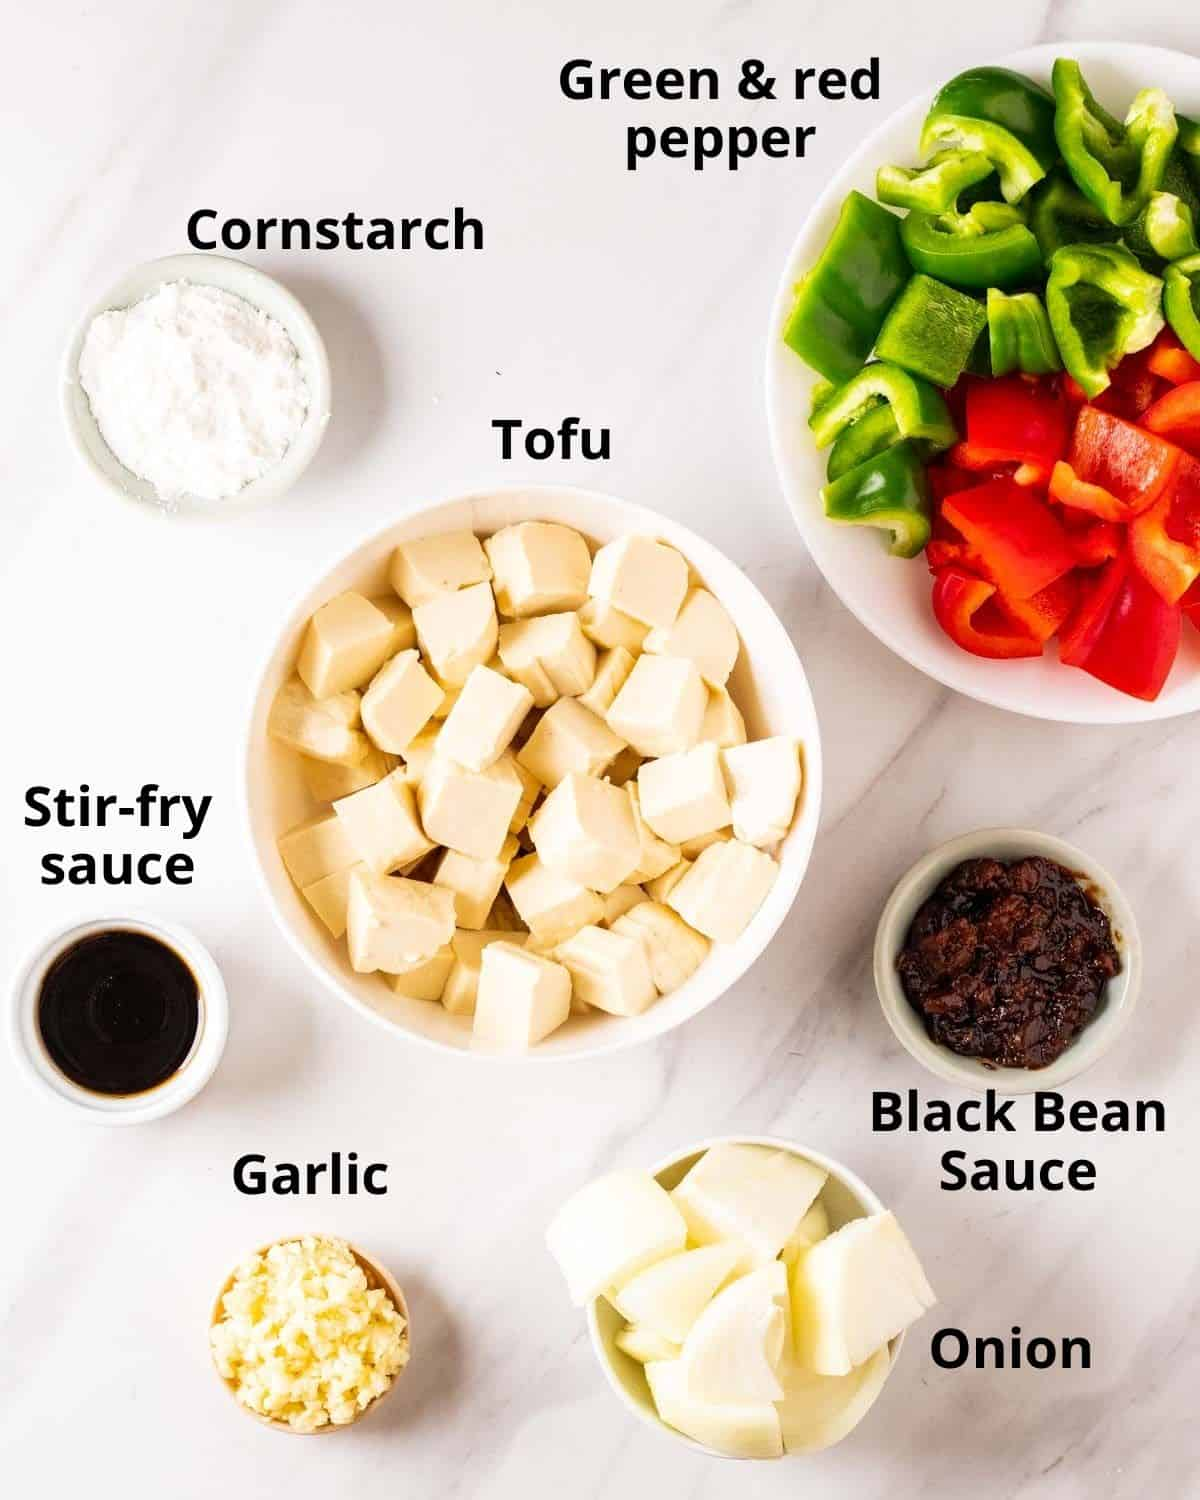 Ingredients needed to make this recipe.